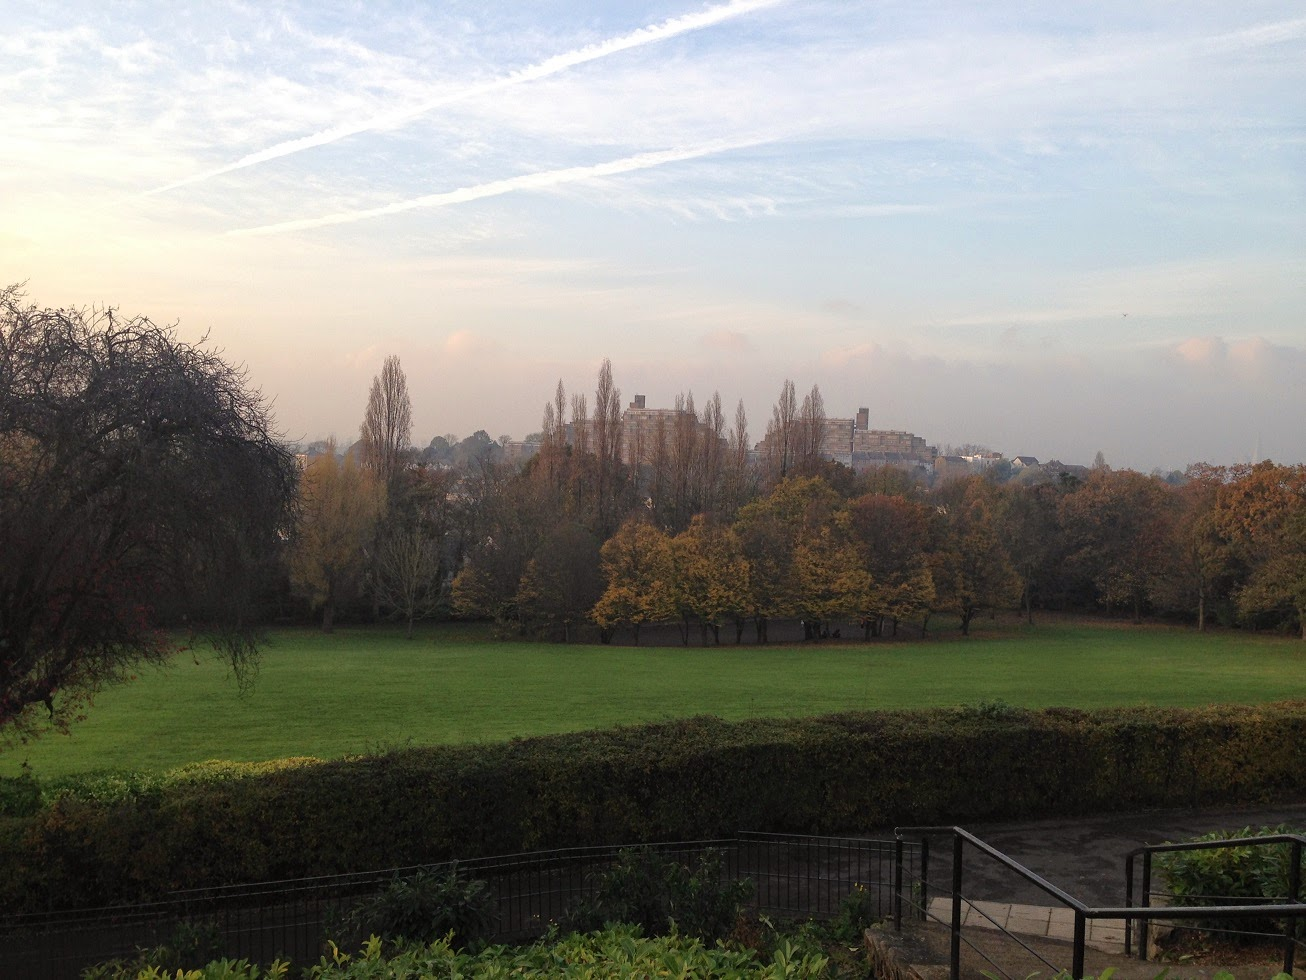 View from Horniman Gardens, Forest Hill, London